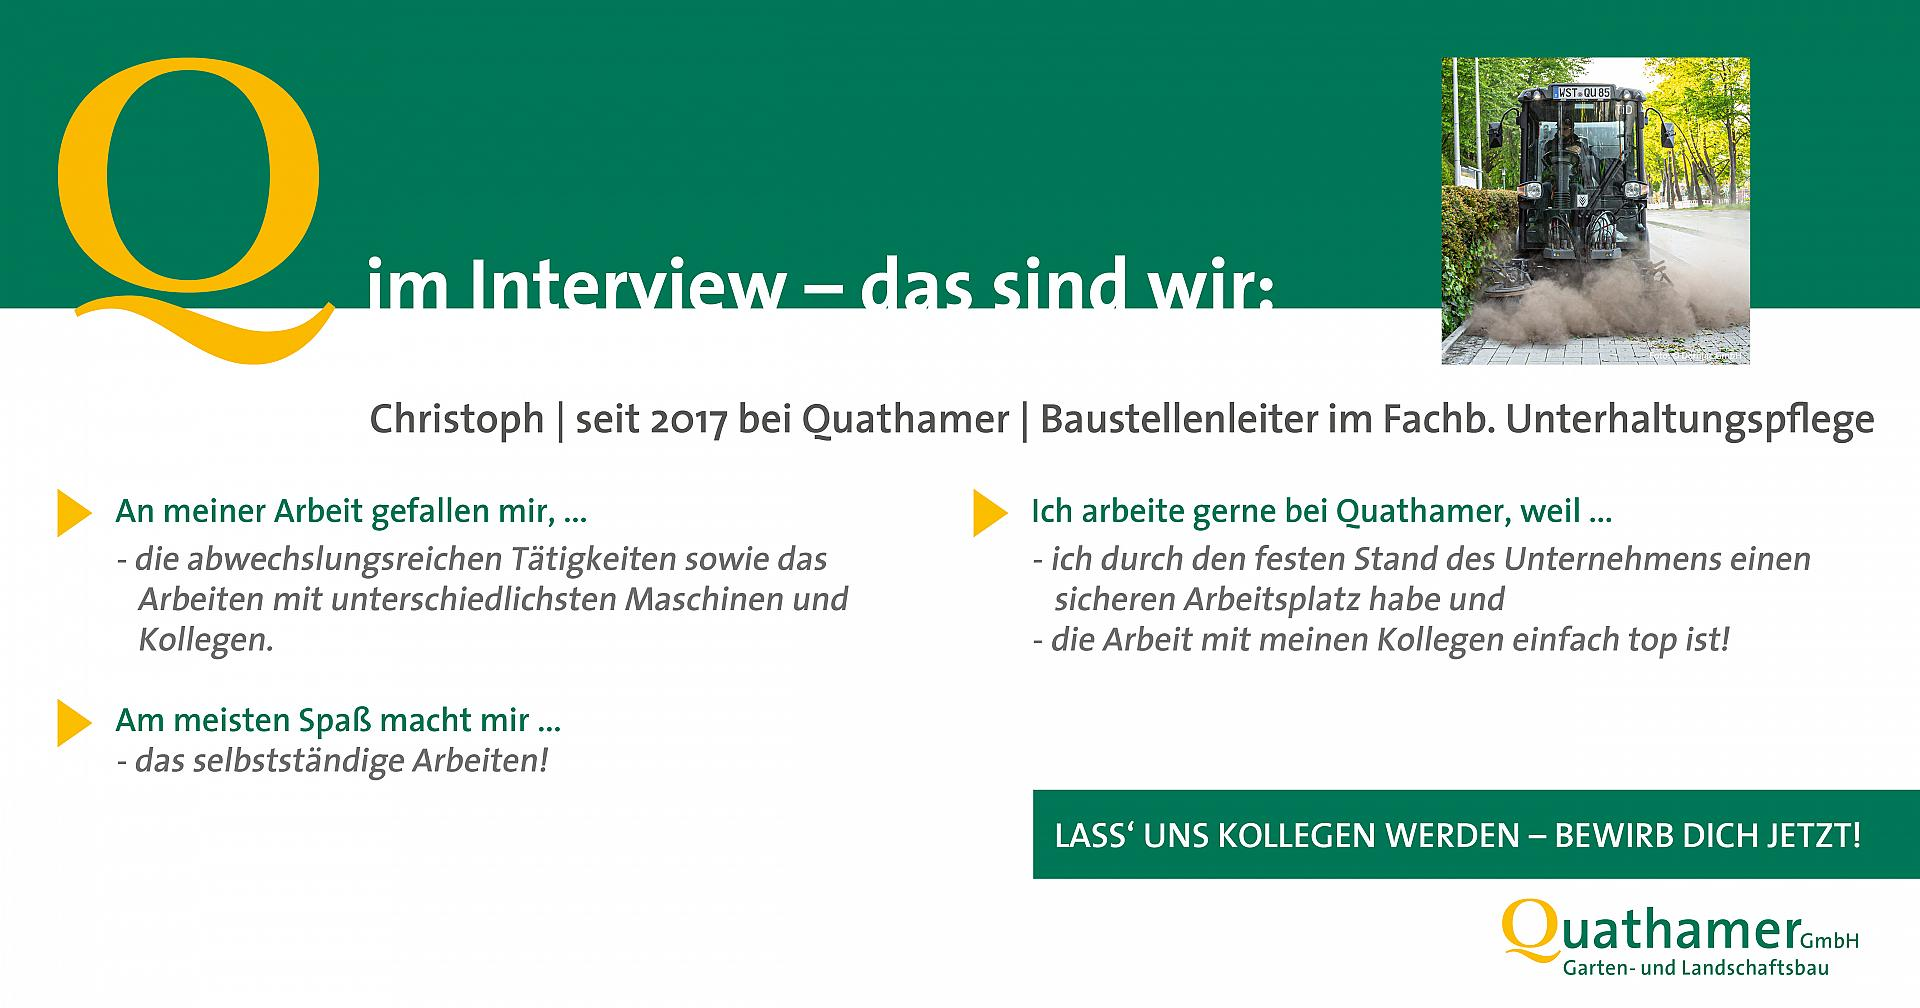 Interview mit Christoph